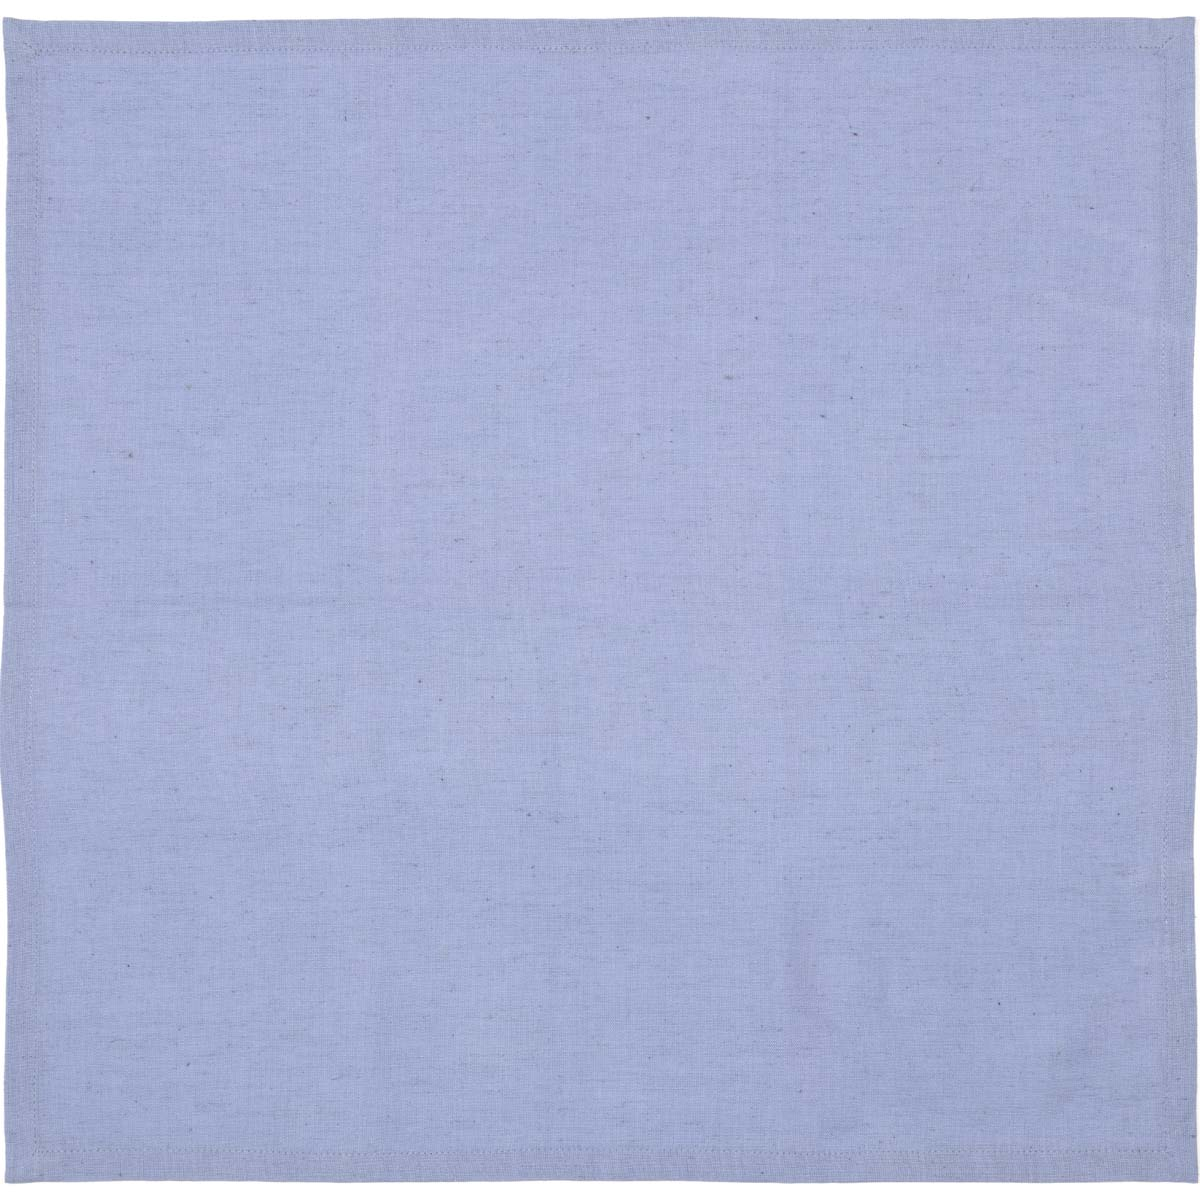 Sara-Light-Blue-Napkin-Set-of-6-18x18-image-3